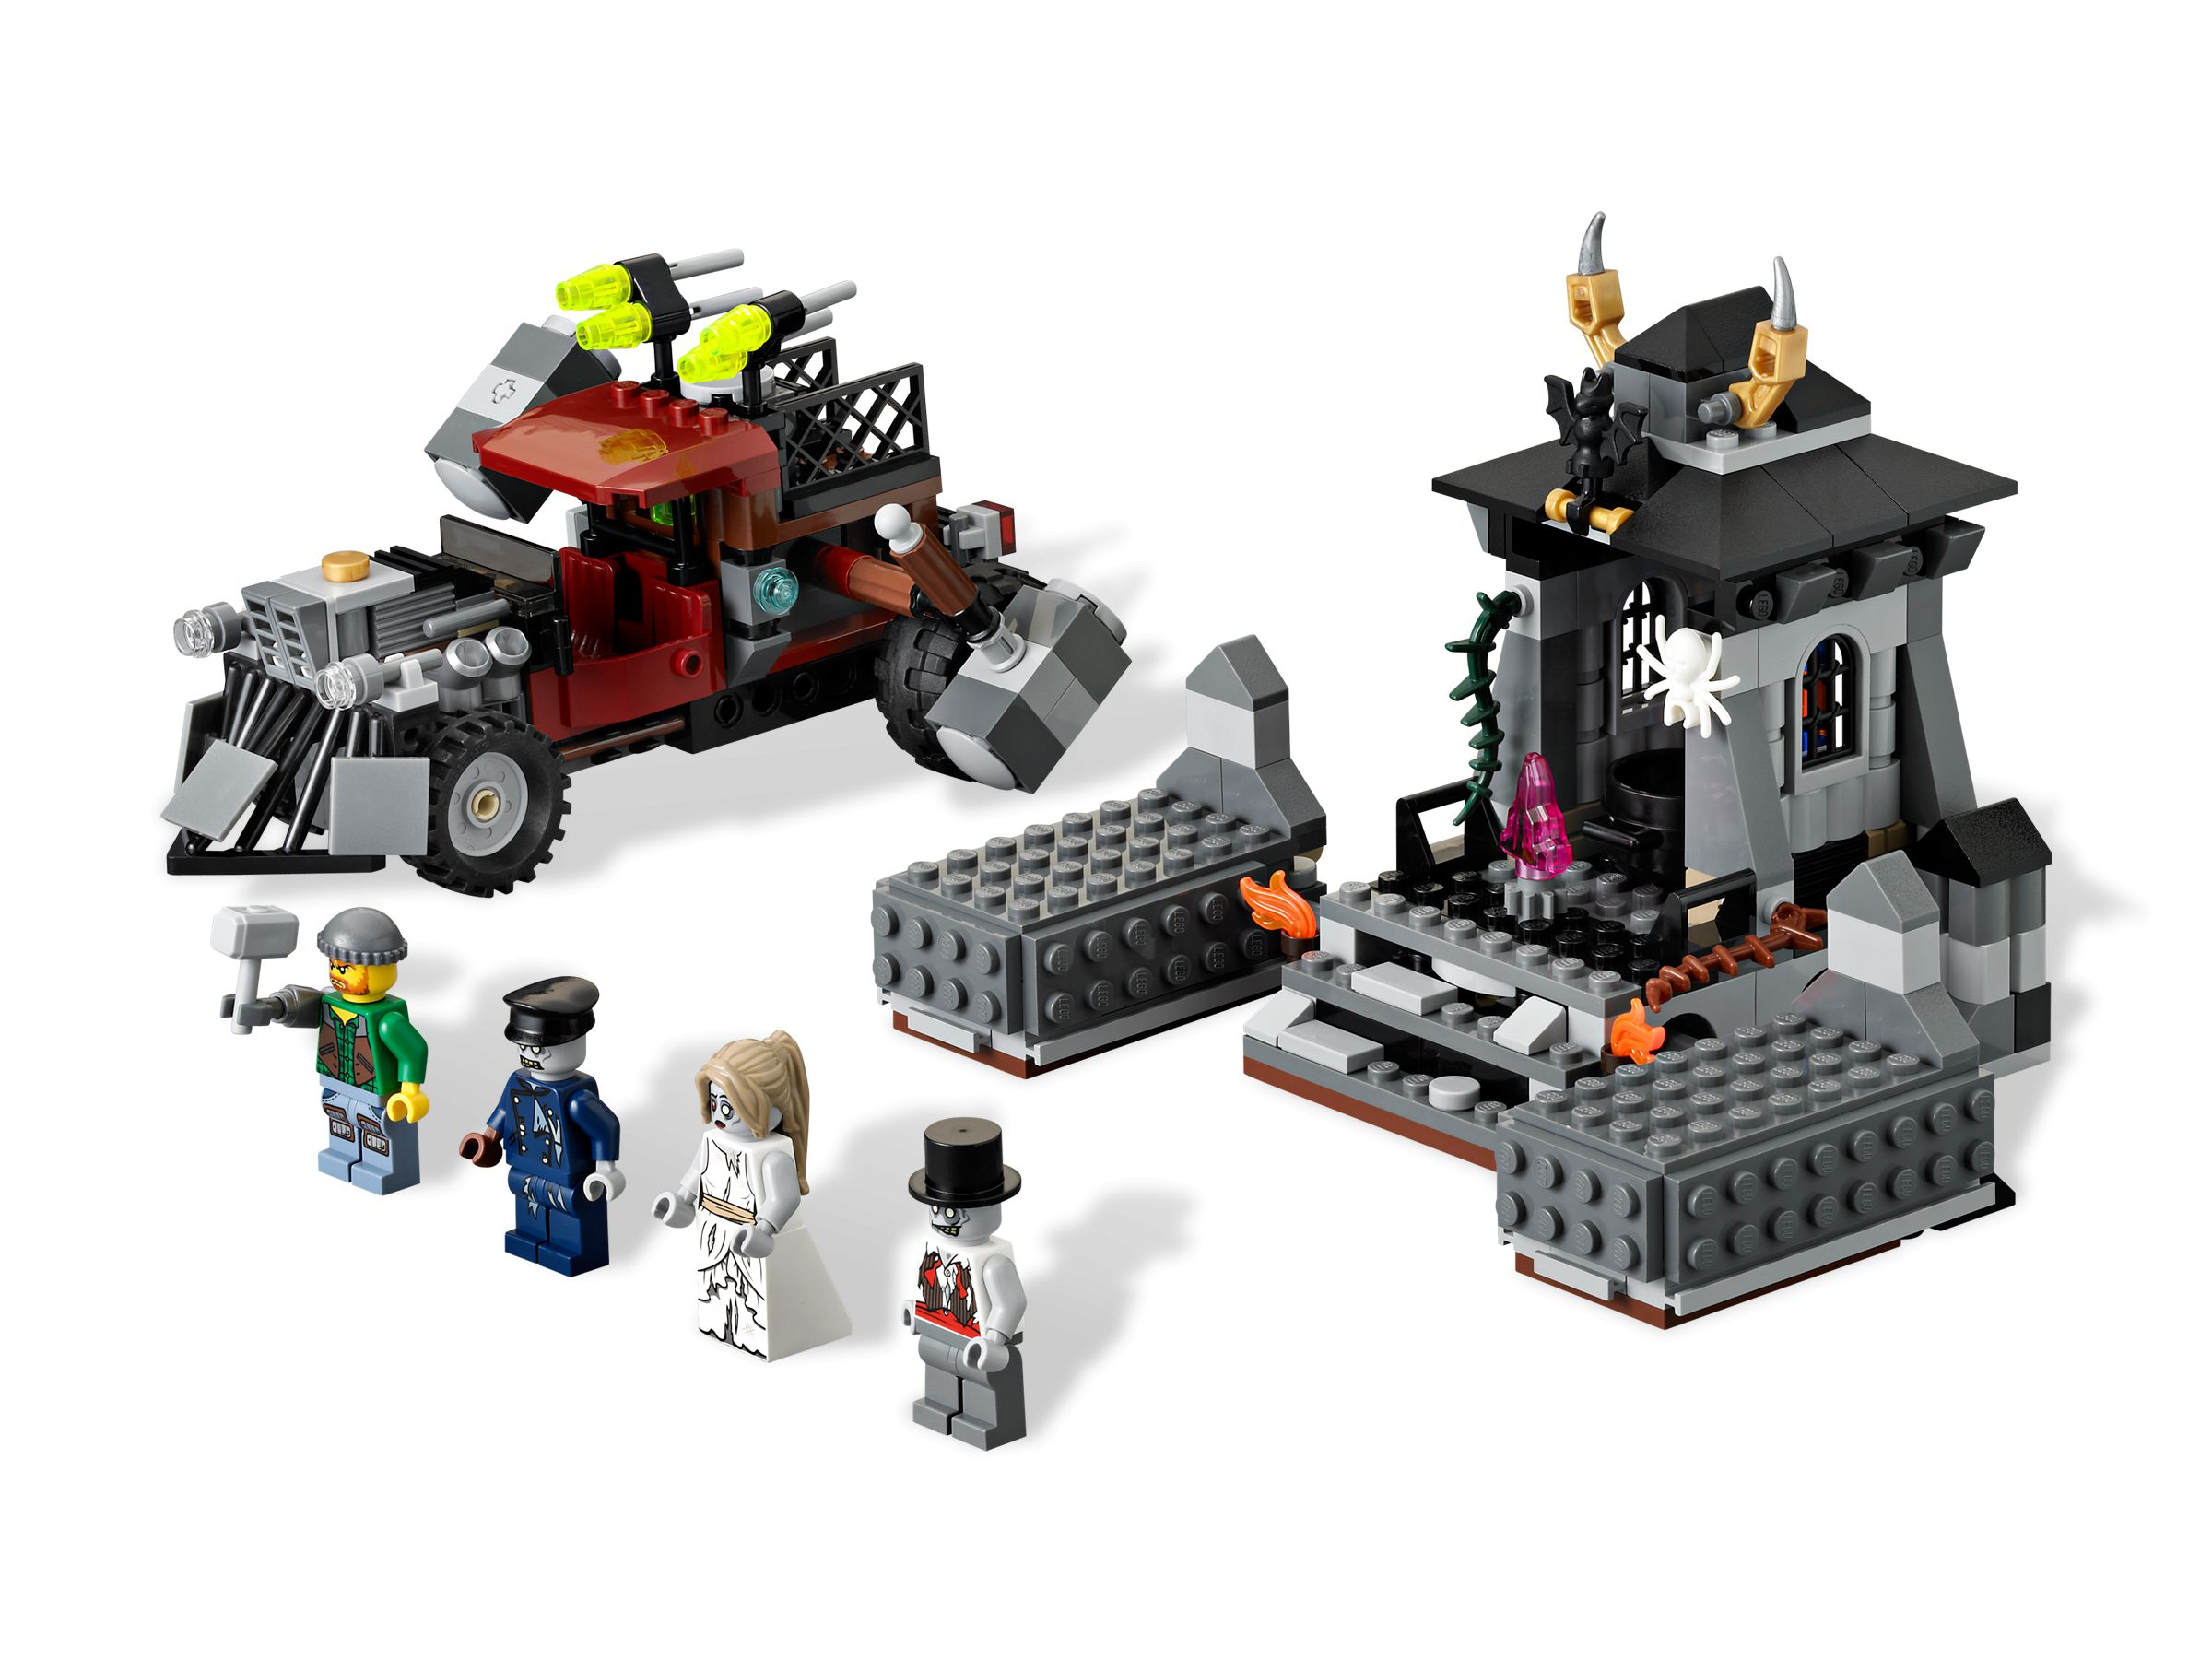 LEGO Monster Fighters 9465 The Zombies LEGO_9465.jpg